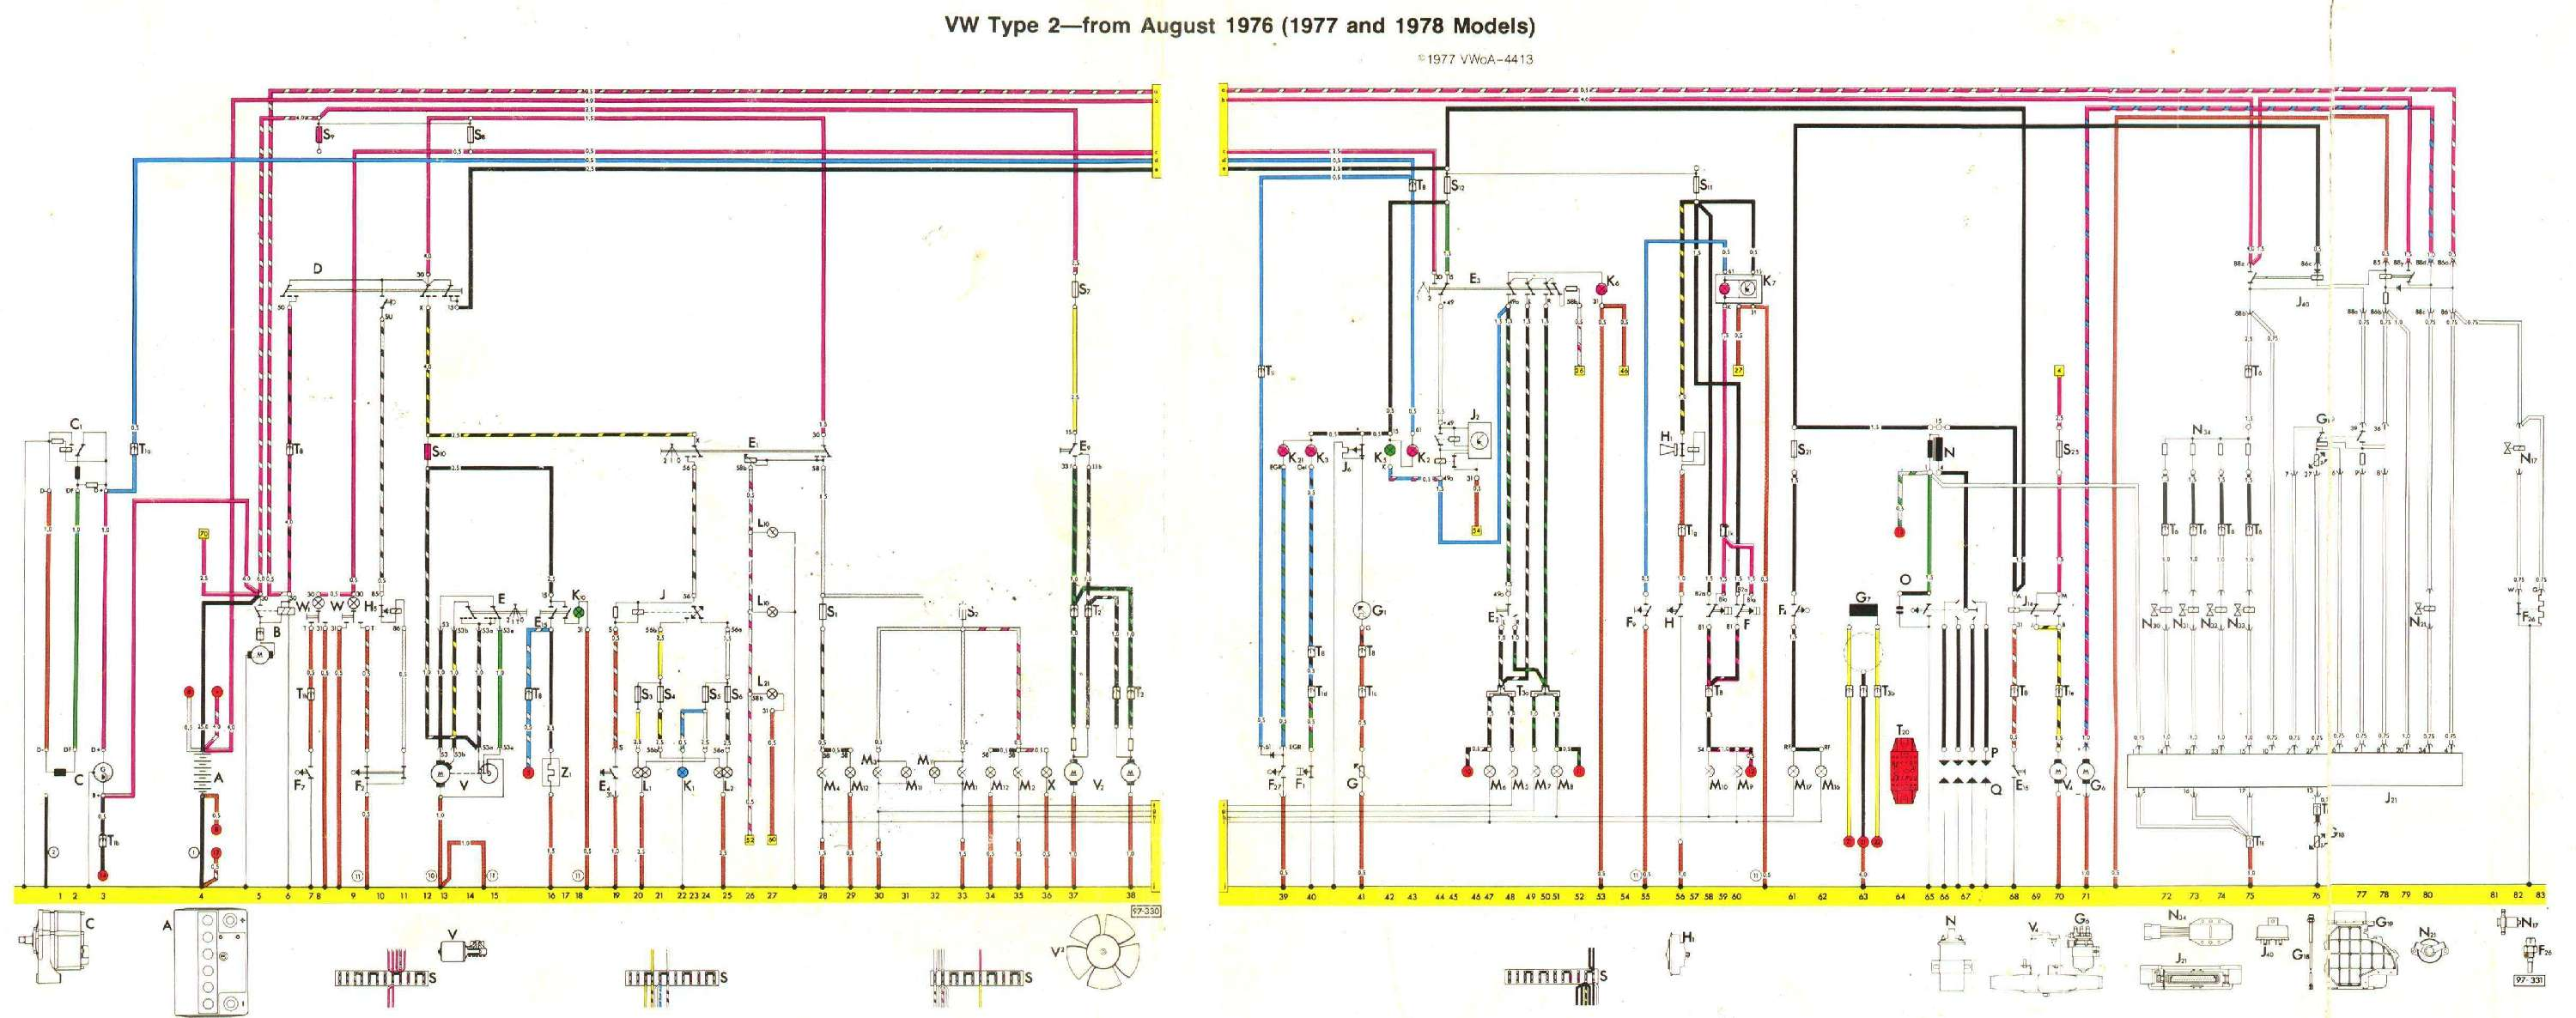 volkswagen t25 wiring diagram rk 9177  wiring diagram vw up schematic wiring  rk 9177  wiring diagram vw up schematic